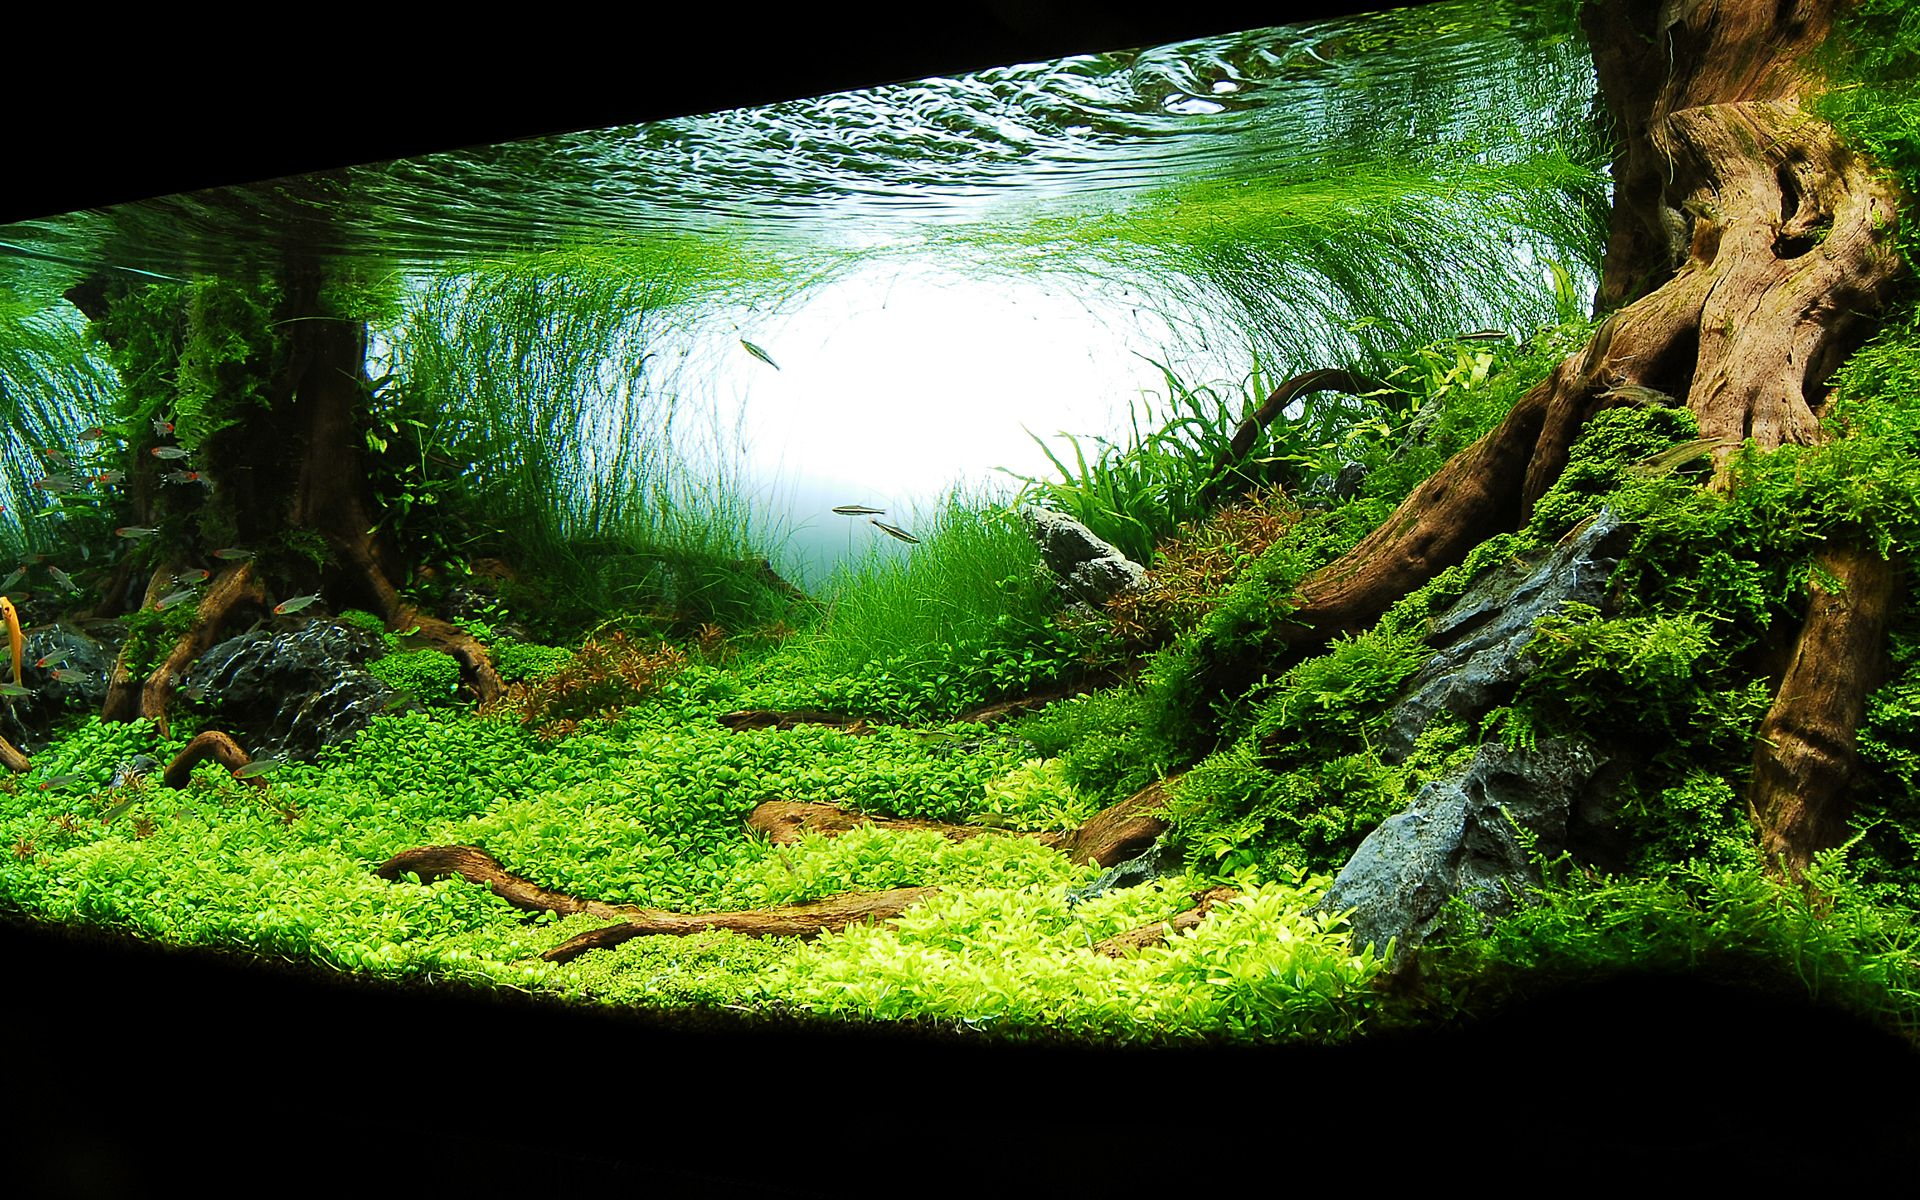 aquarium wallpaper hd - photo #32